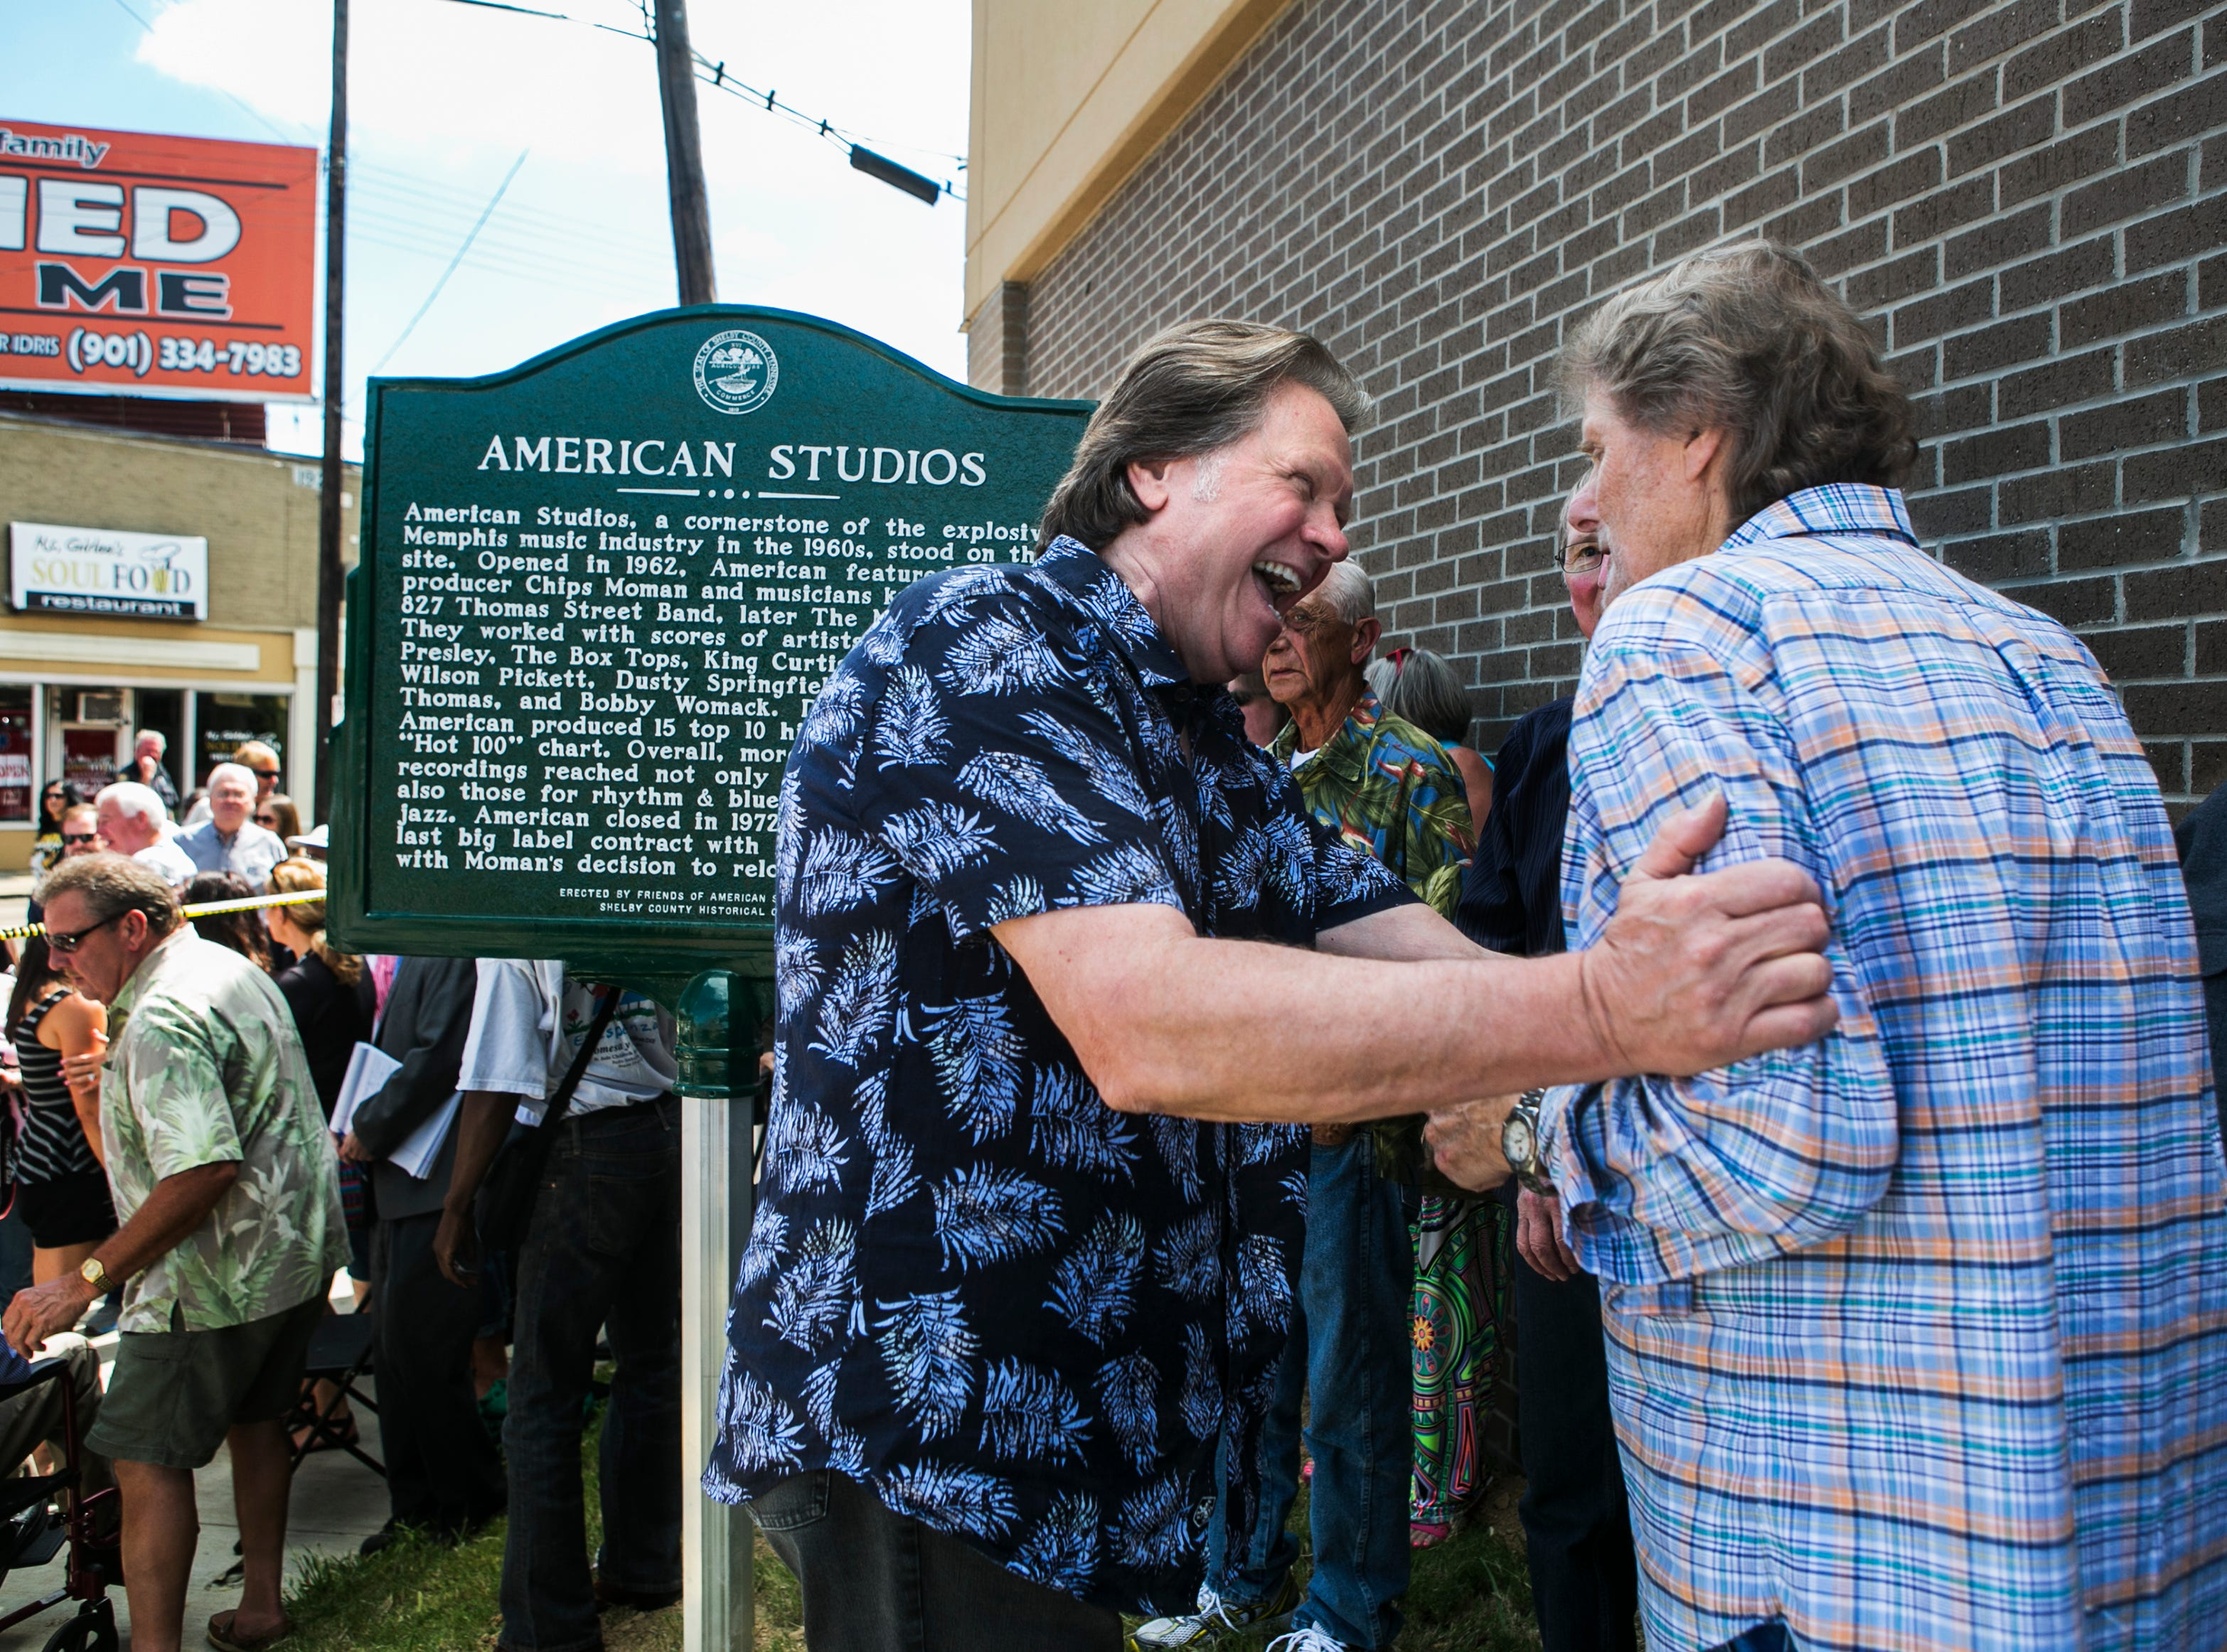 "August 13, 2014 - Songwriter Mark James, who penned Elvis Presley's hit ""Suspicious Minds"", embraces Reggie Young, guitarist of American Sound Studios Band, during the unveiling of the American Studios historical marker at 831 Thomas Wednesday afternoon."